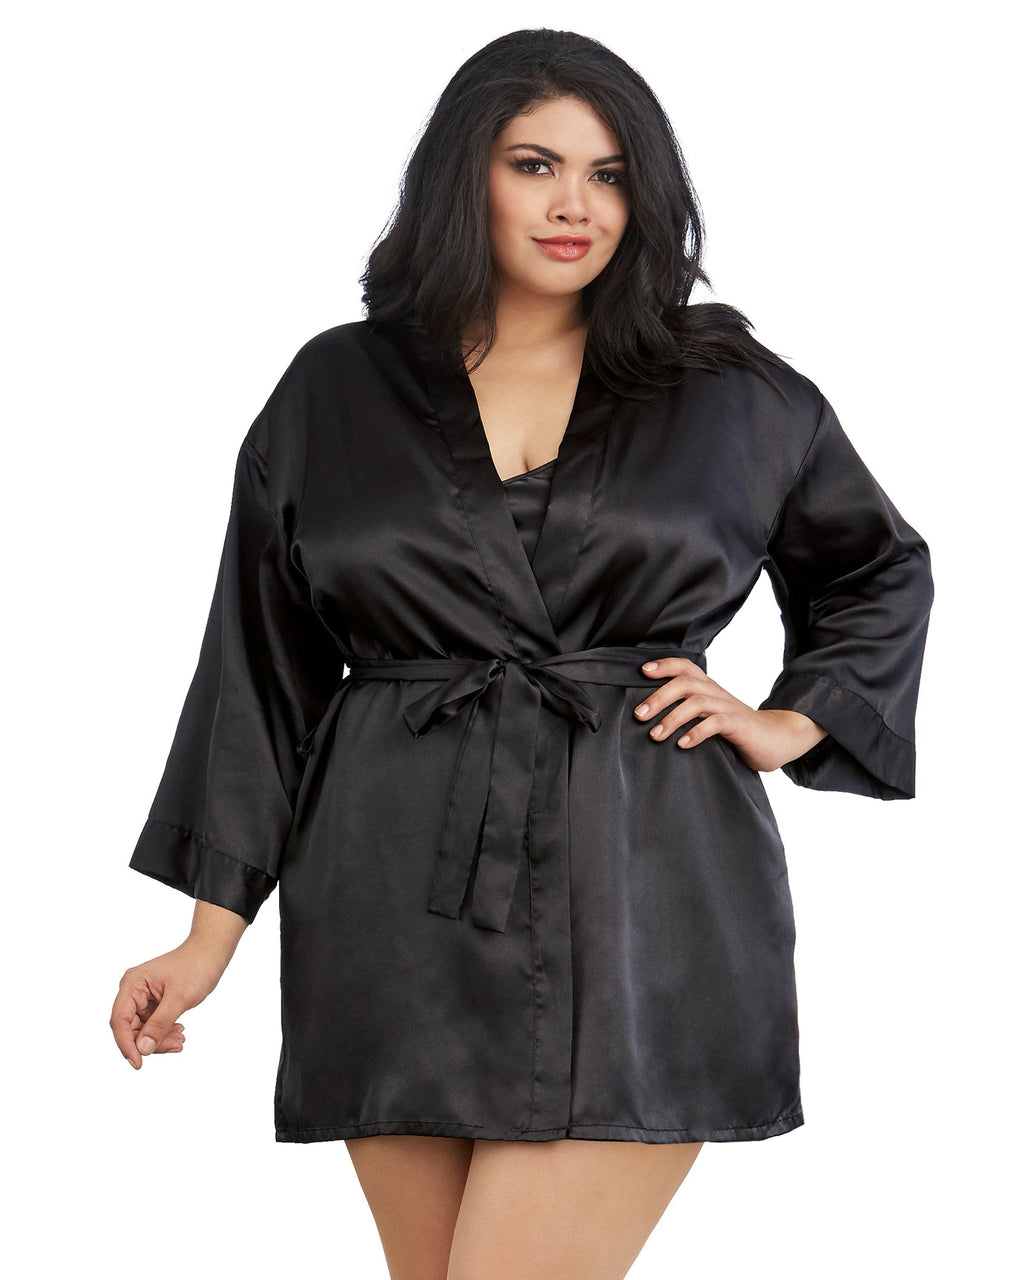 Plus Size Satin Robe & Chemise Set Robe Dreamgirl International 1X/2X Black